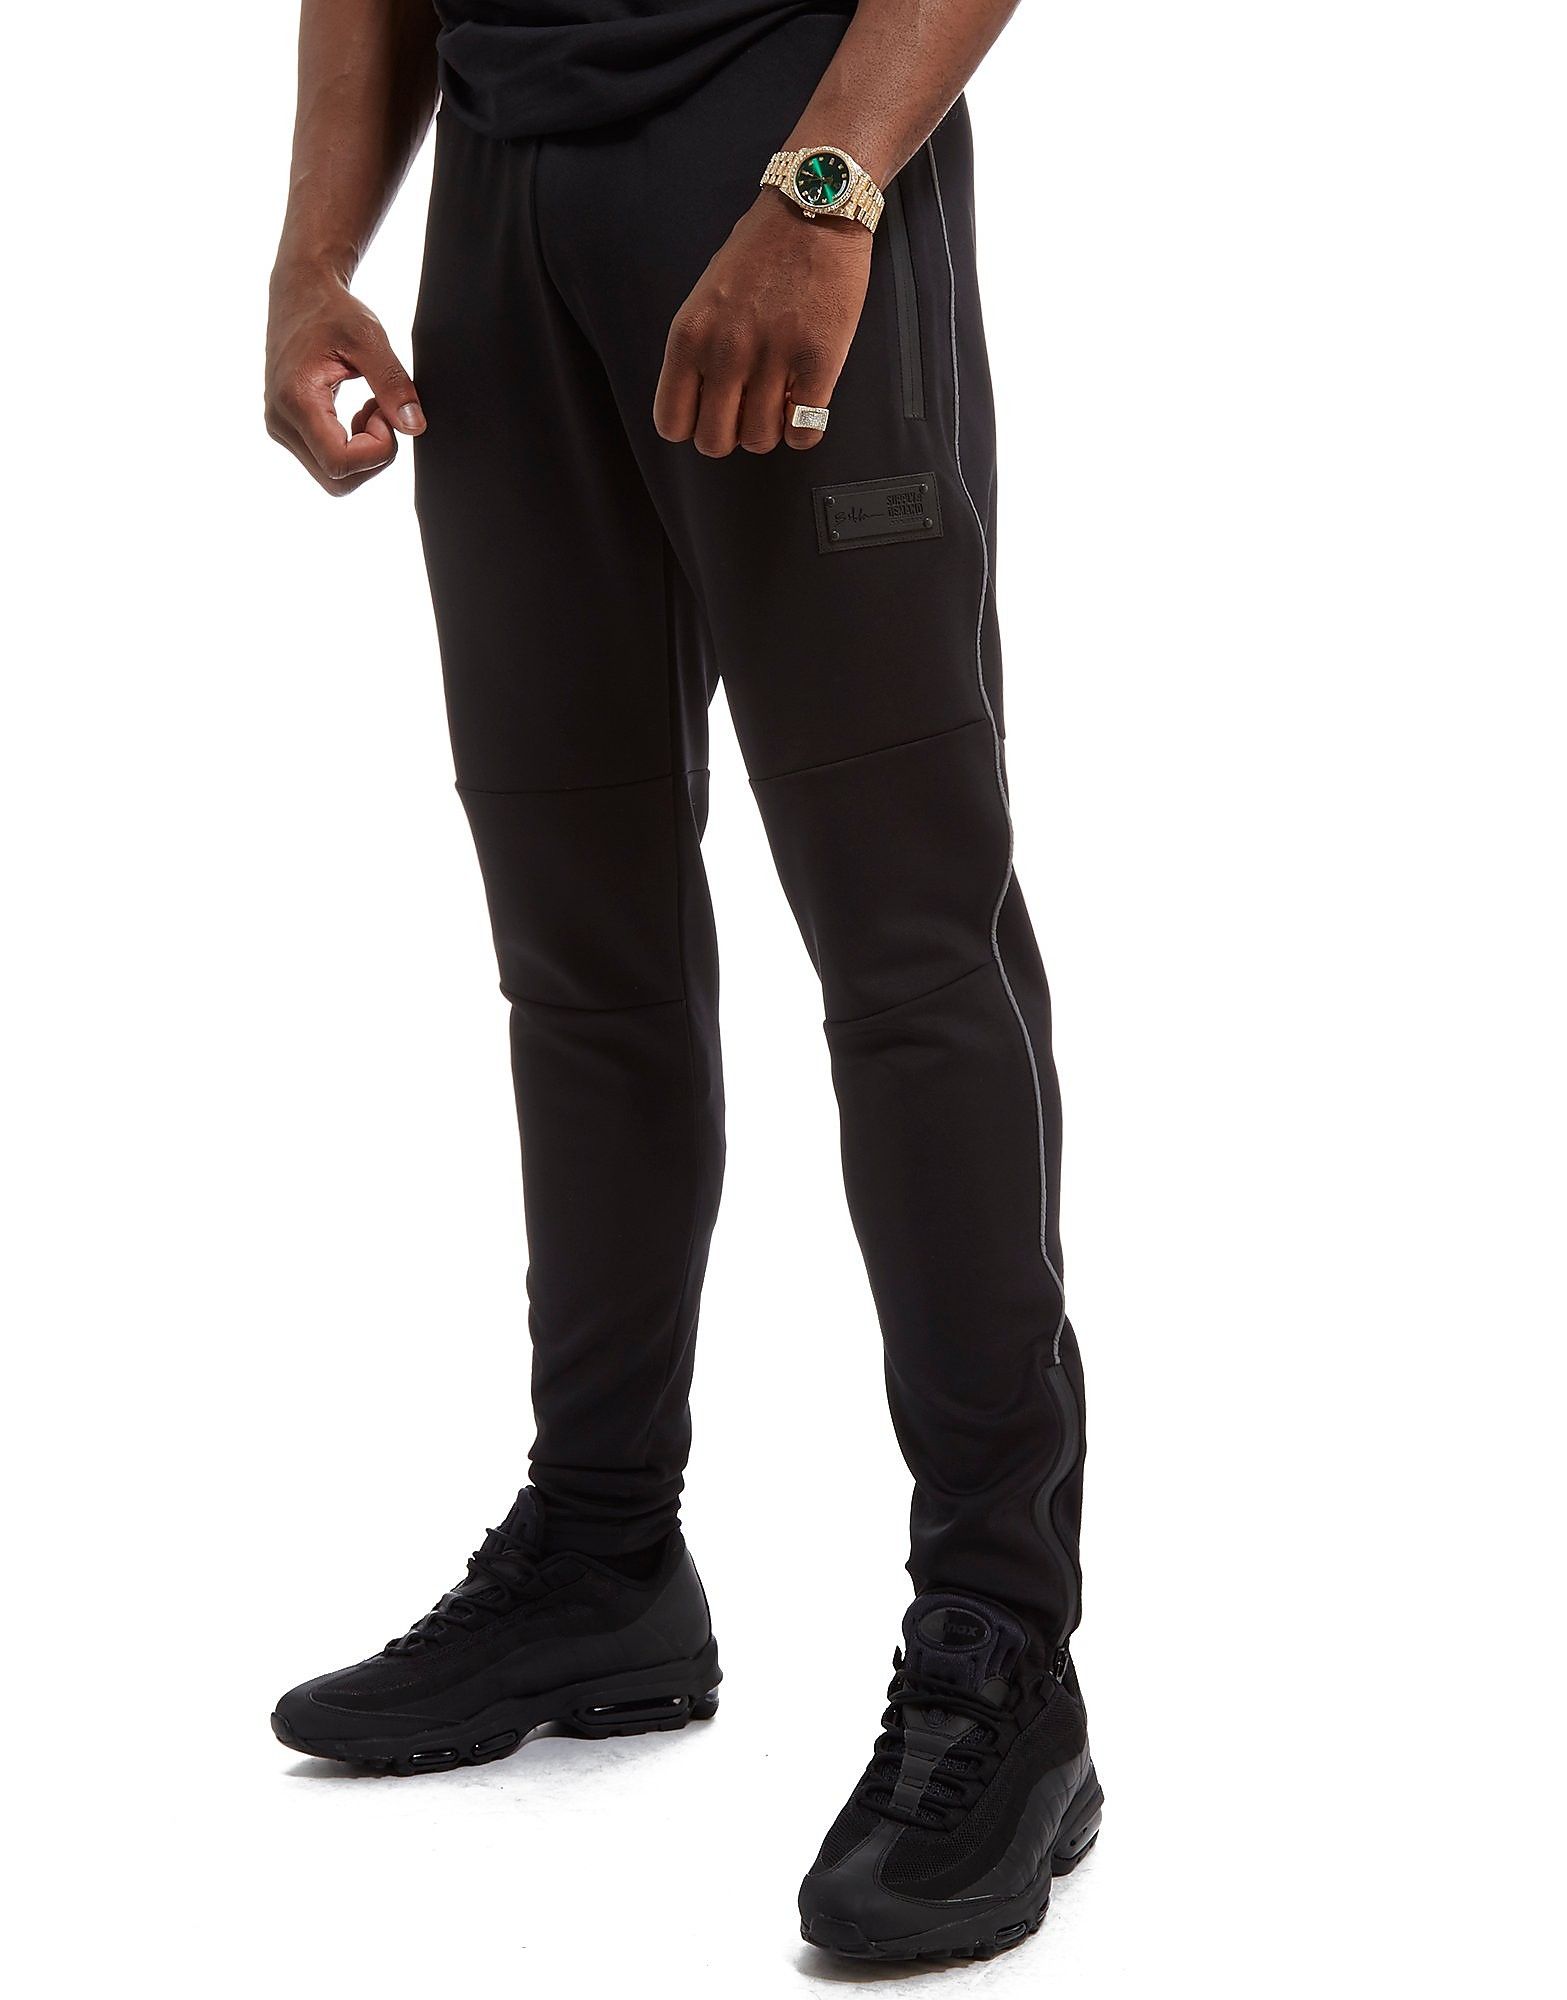 Supply & Demand x Bugzy Malone Technic Joggers